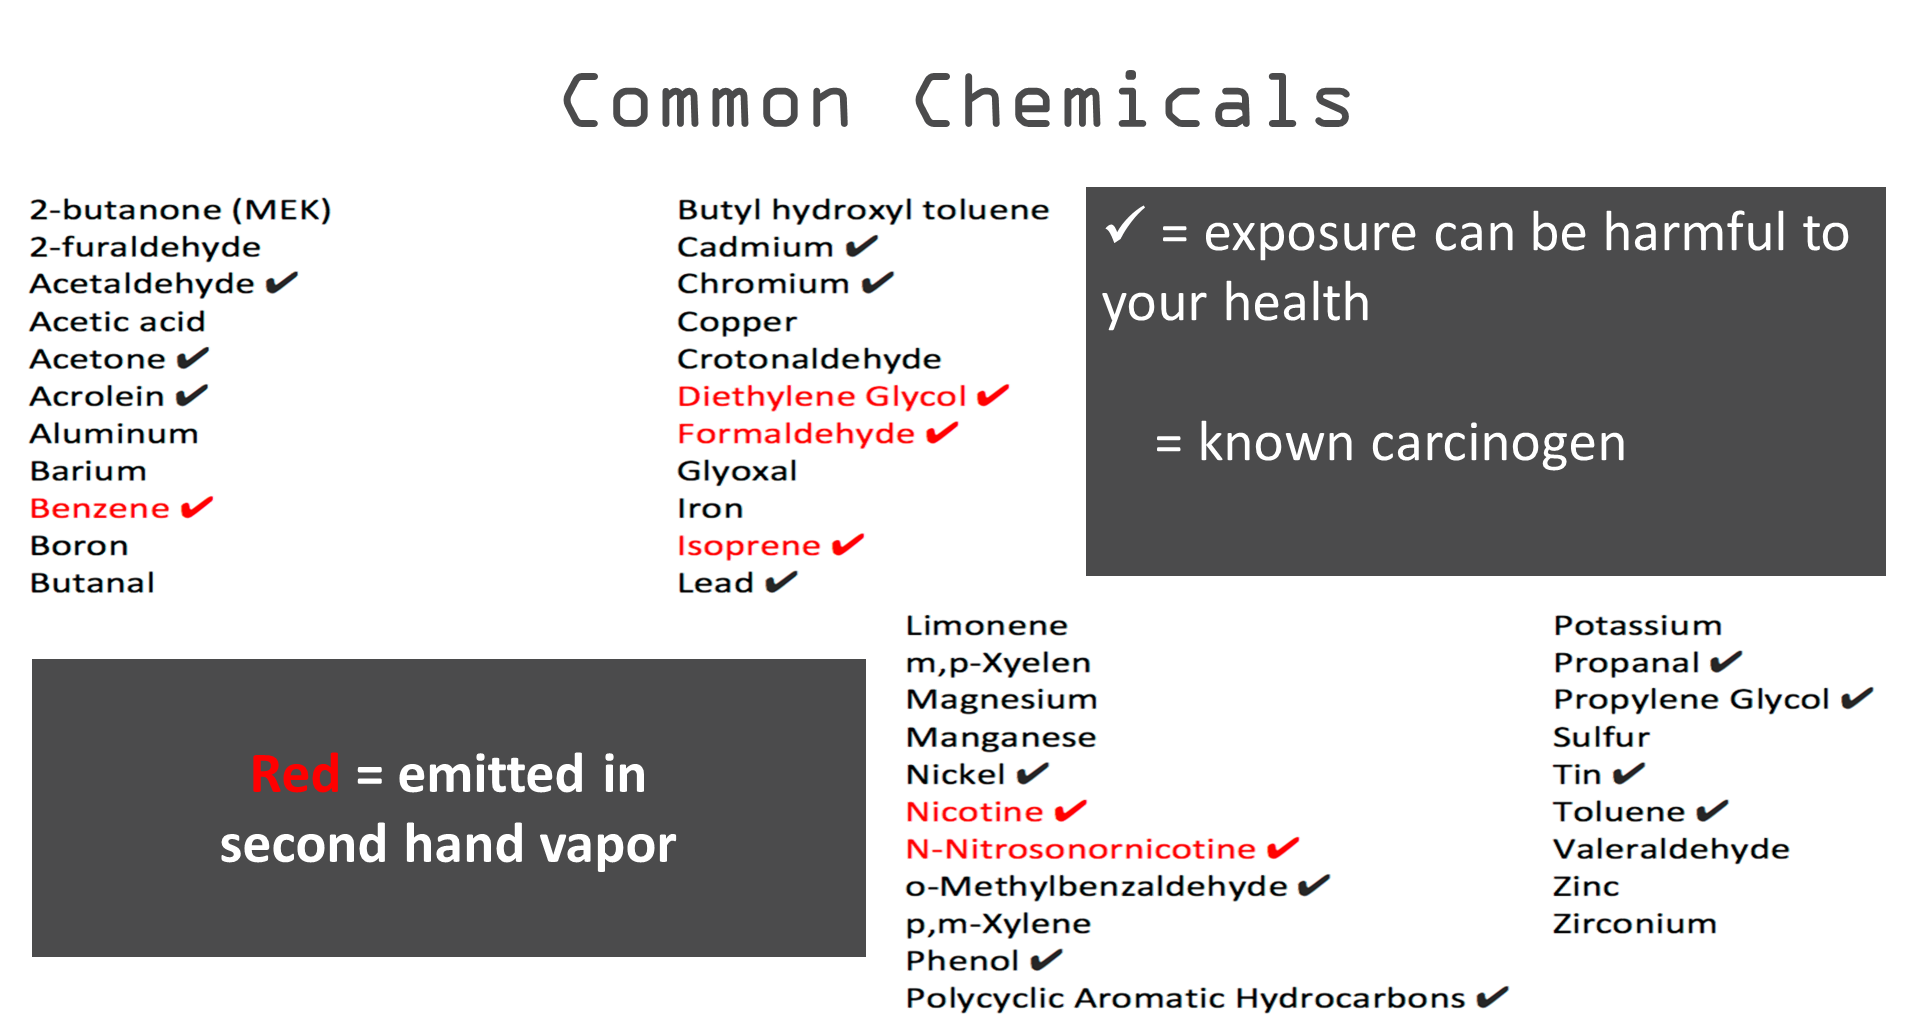 Common Chemicals